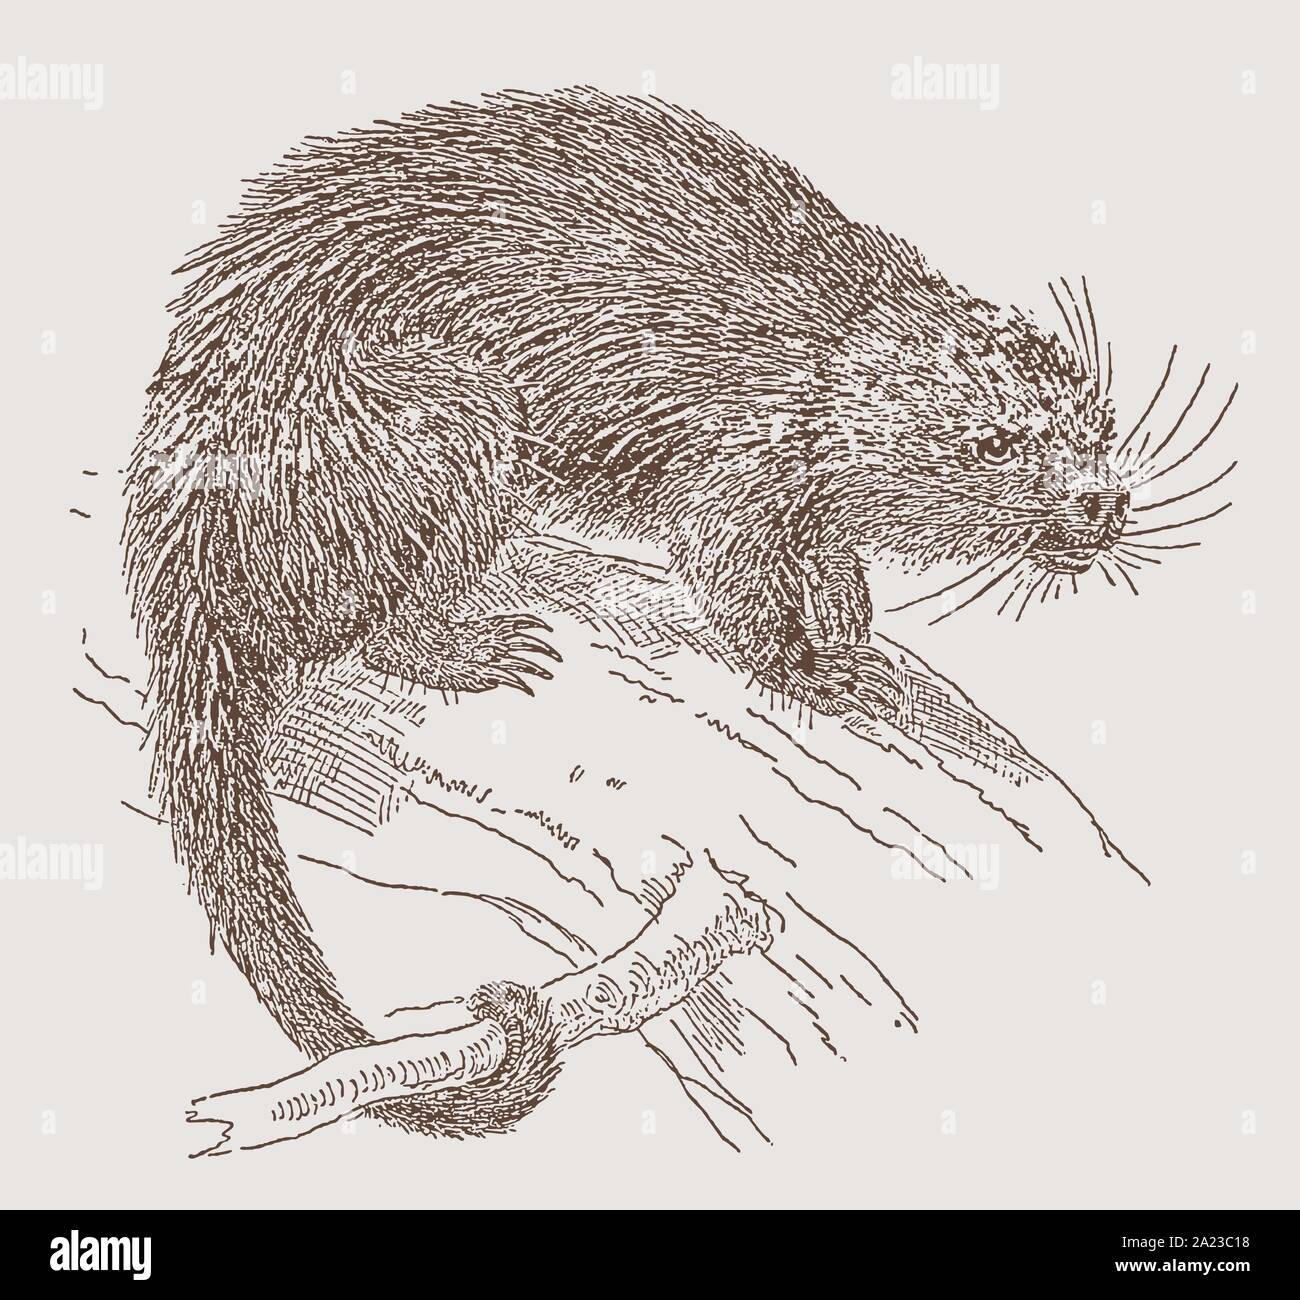 Bicolored-spined porcupine (coendou bicolor) sitting on a branch. Illustration after an engraving from the 19th century Stock Vector